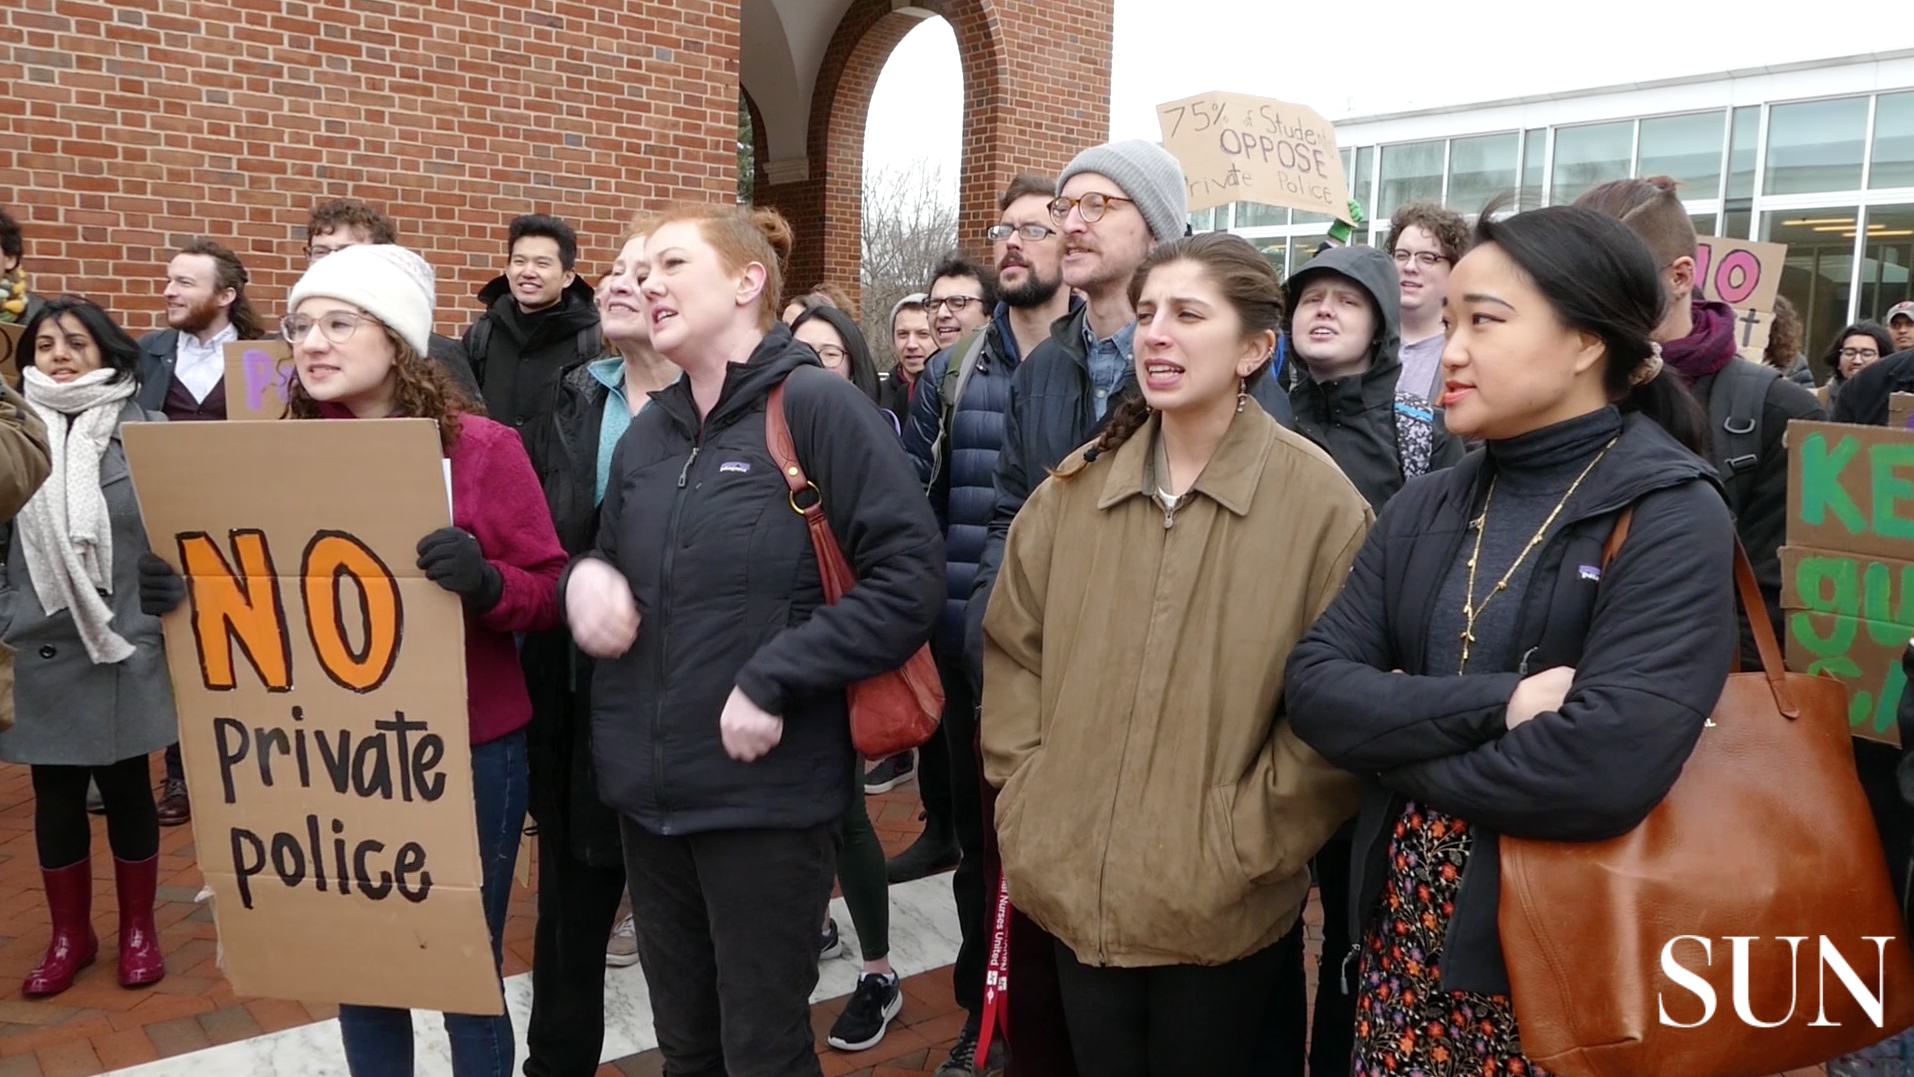 Johns Hopkins' latest plan for police force prompts protest